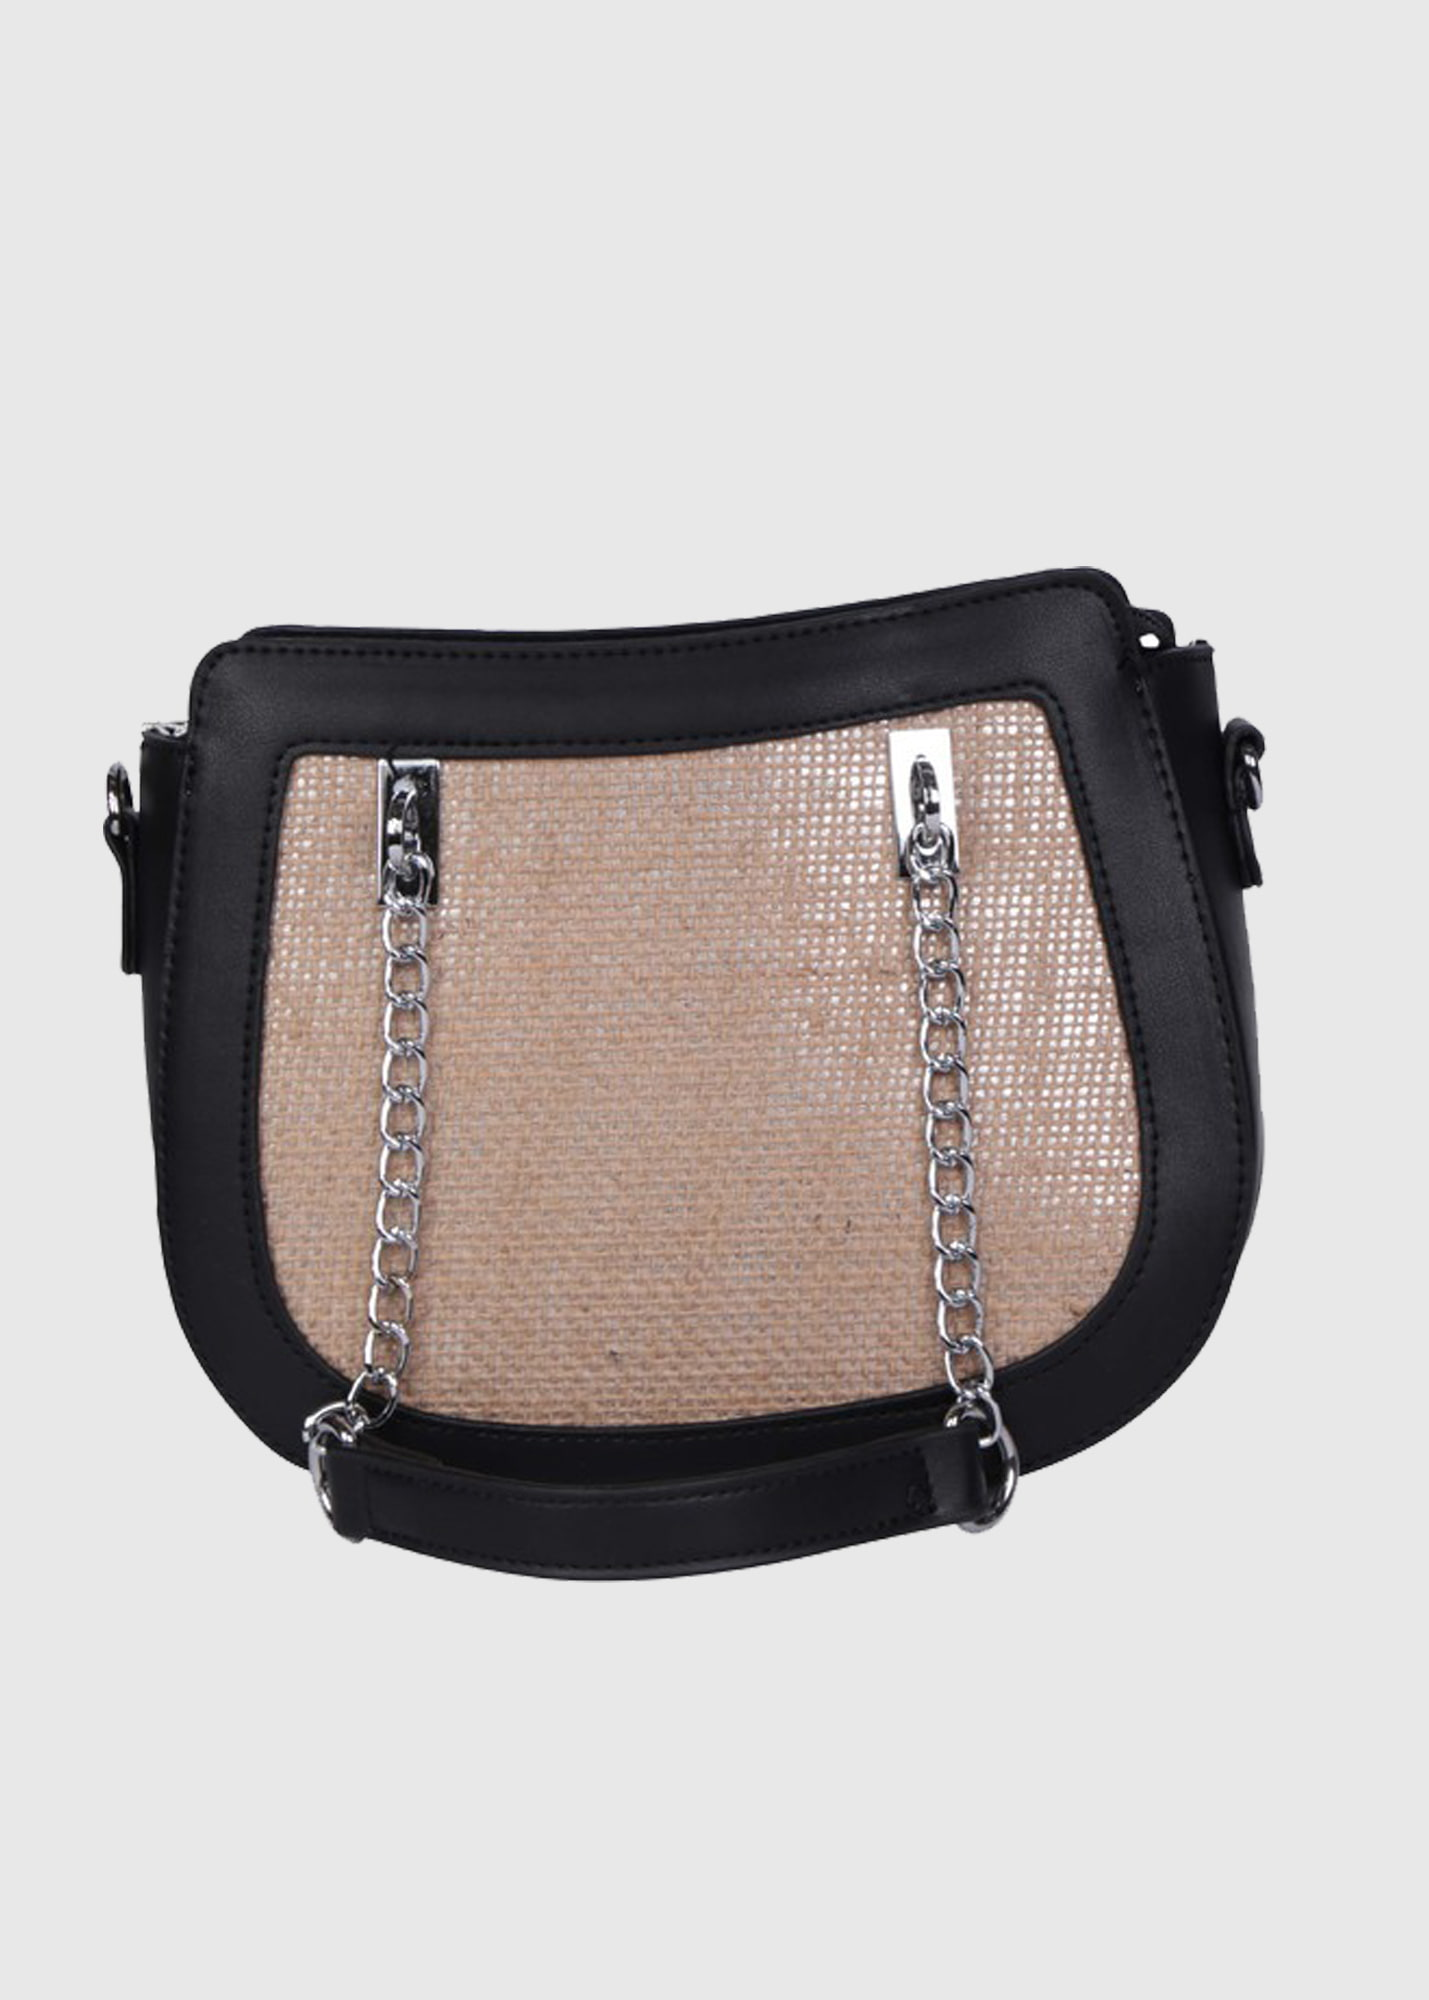 Giacinta black bag with chain strap